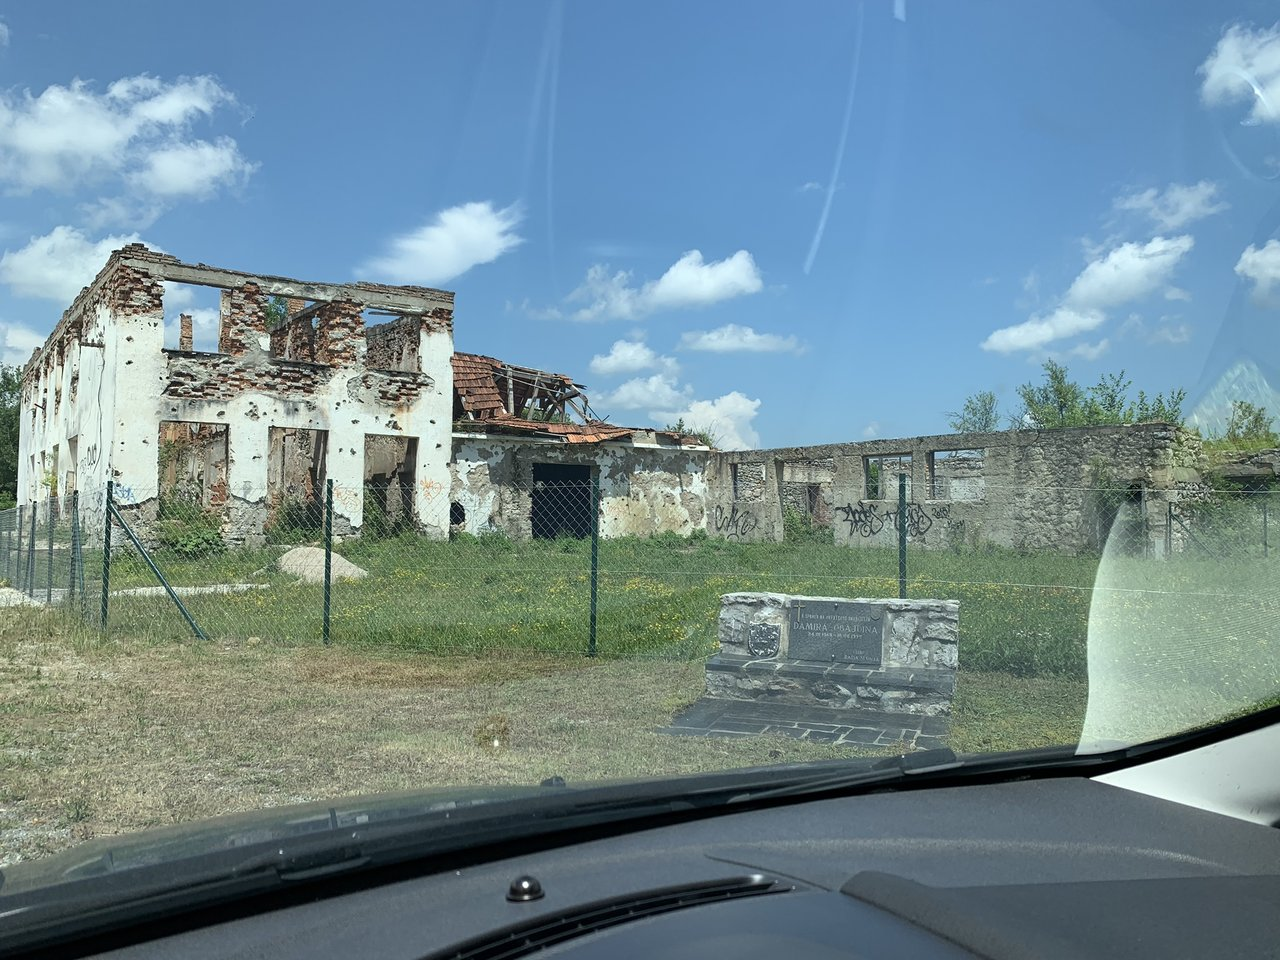 Some of the war torn areas we drove through. | Photo taken by Stephen G